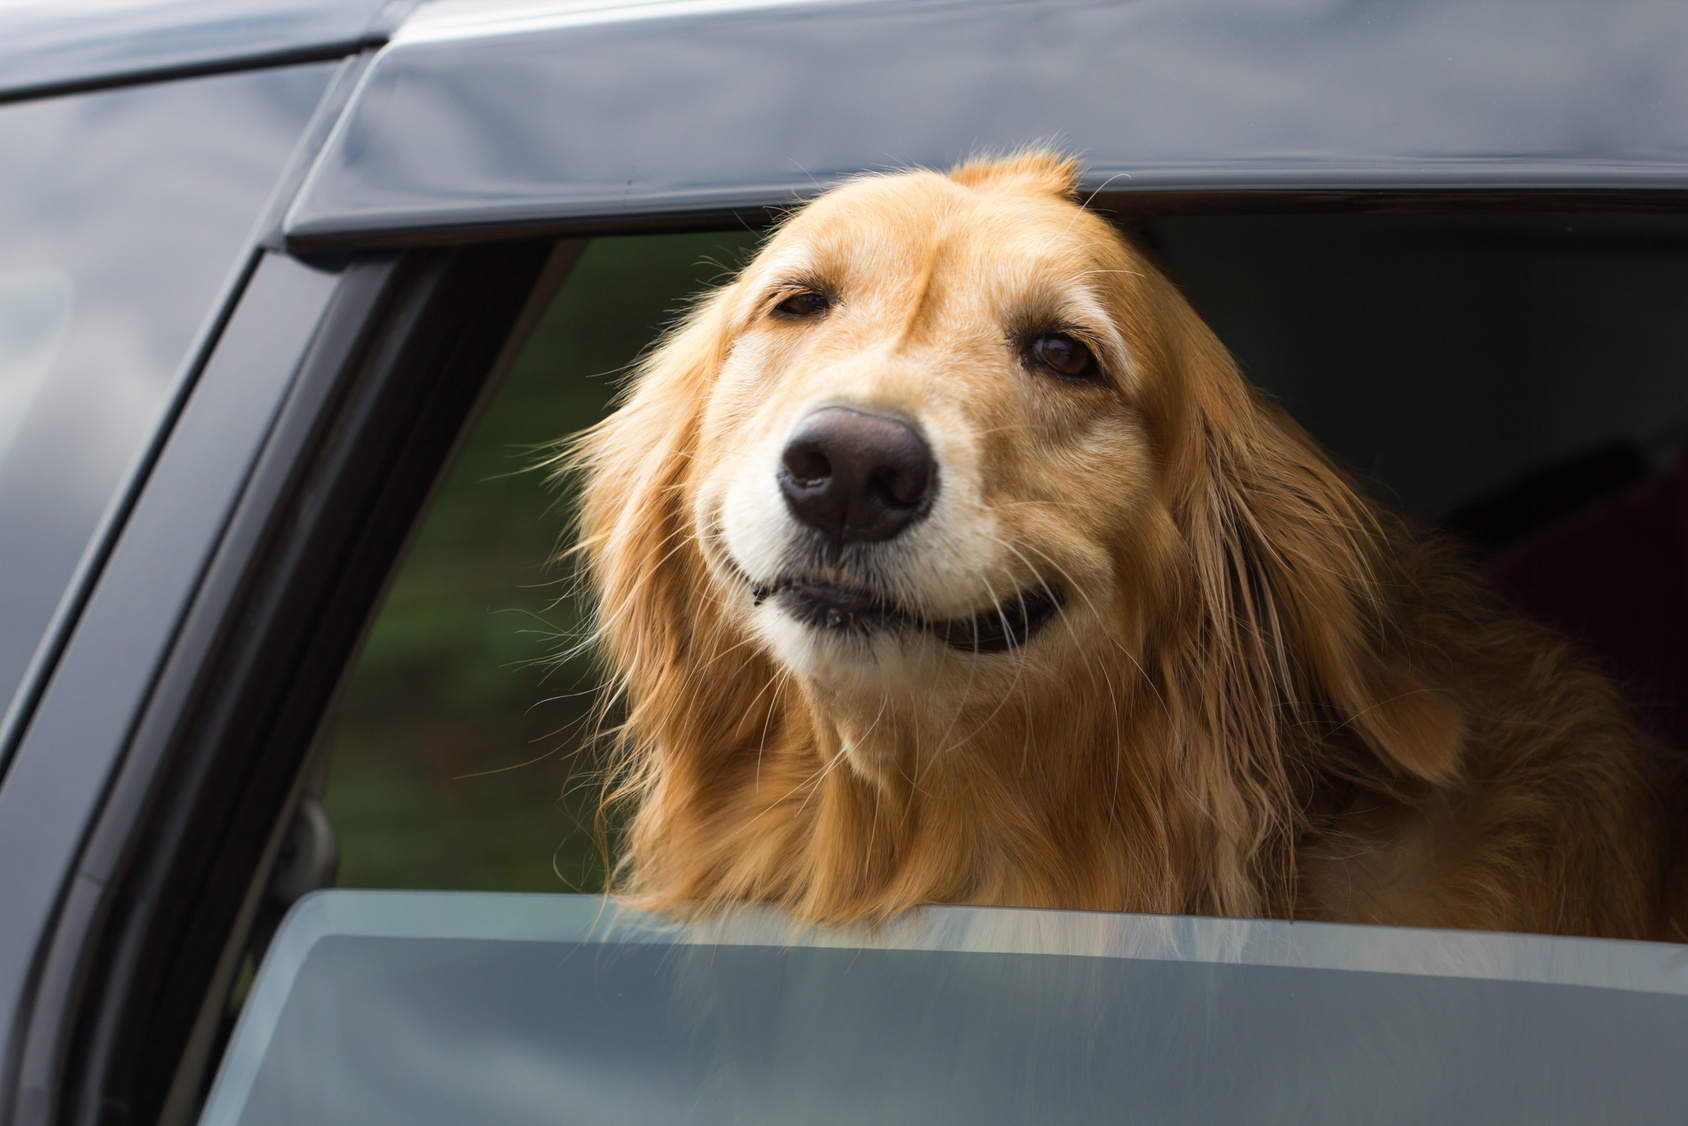 Noble Families Do Dogs Smile Science Does Dogs Smile Dogs Are A Investment bark post Do Dogs Smile